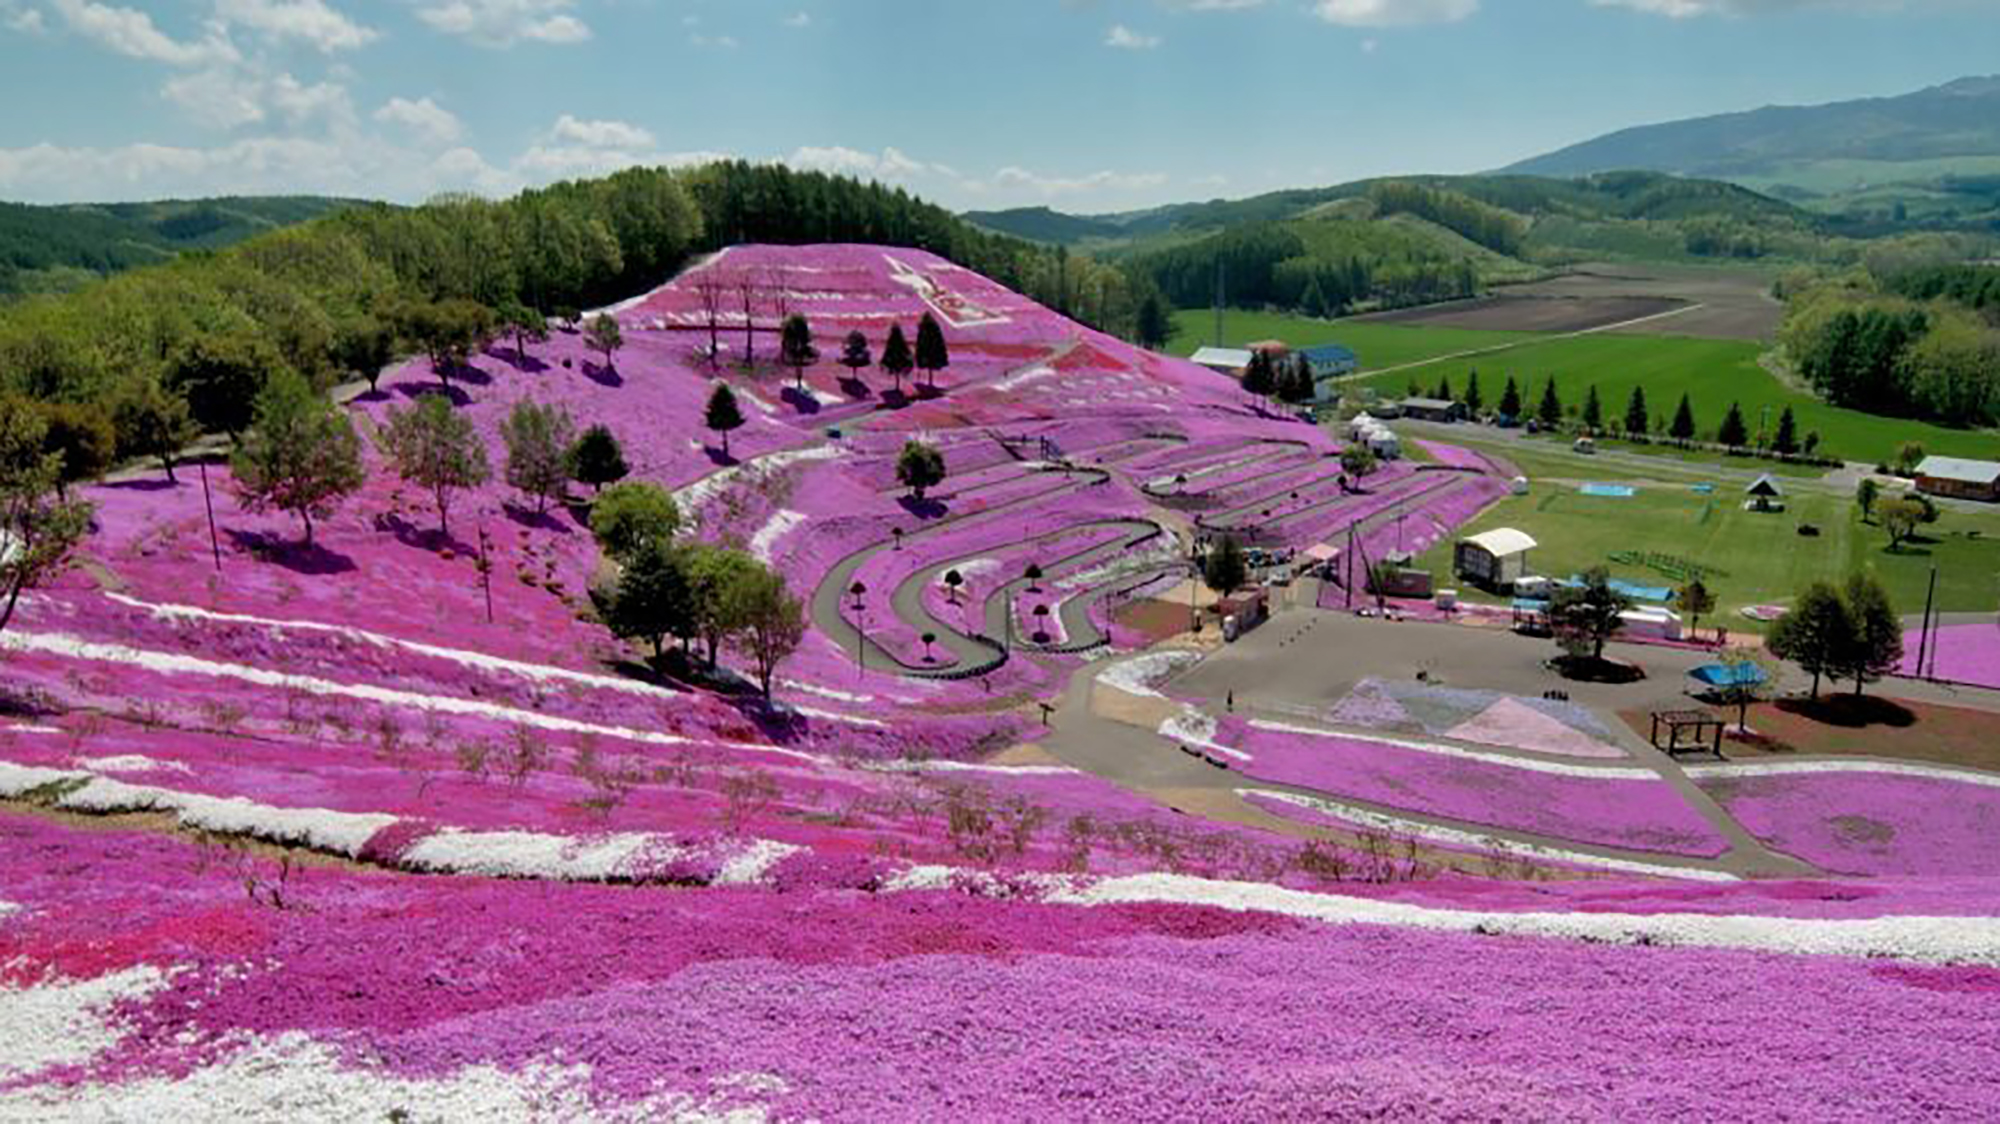 In pictures: Japan's spectacular flower fields